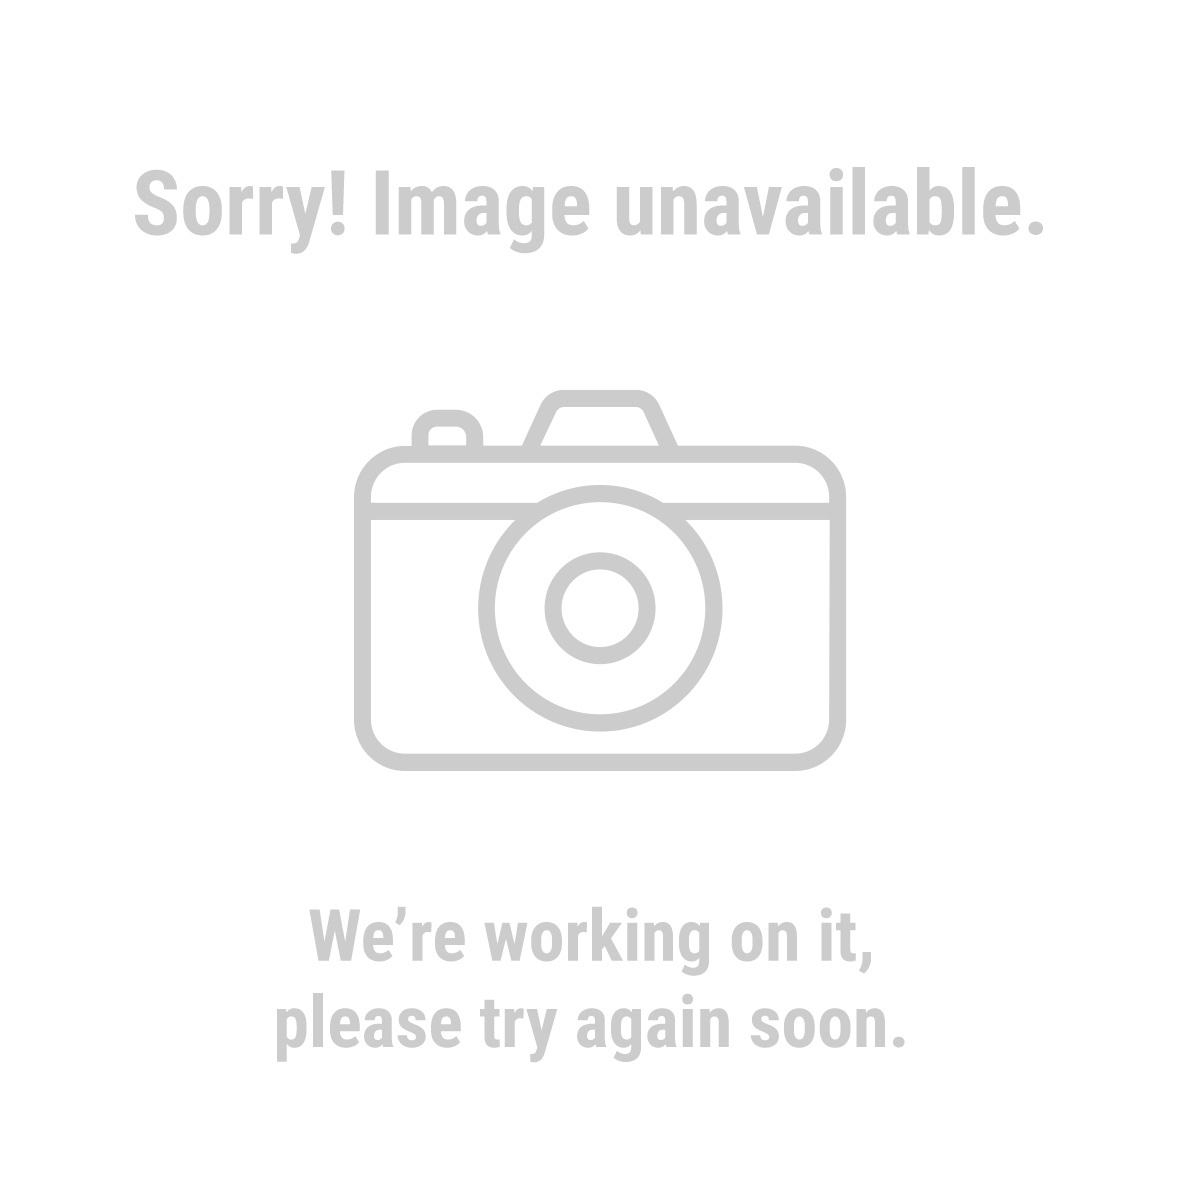 Grant's 63361 Microfiber Cleaning Cloths 12 Pk.